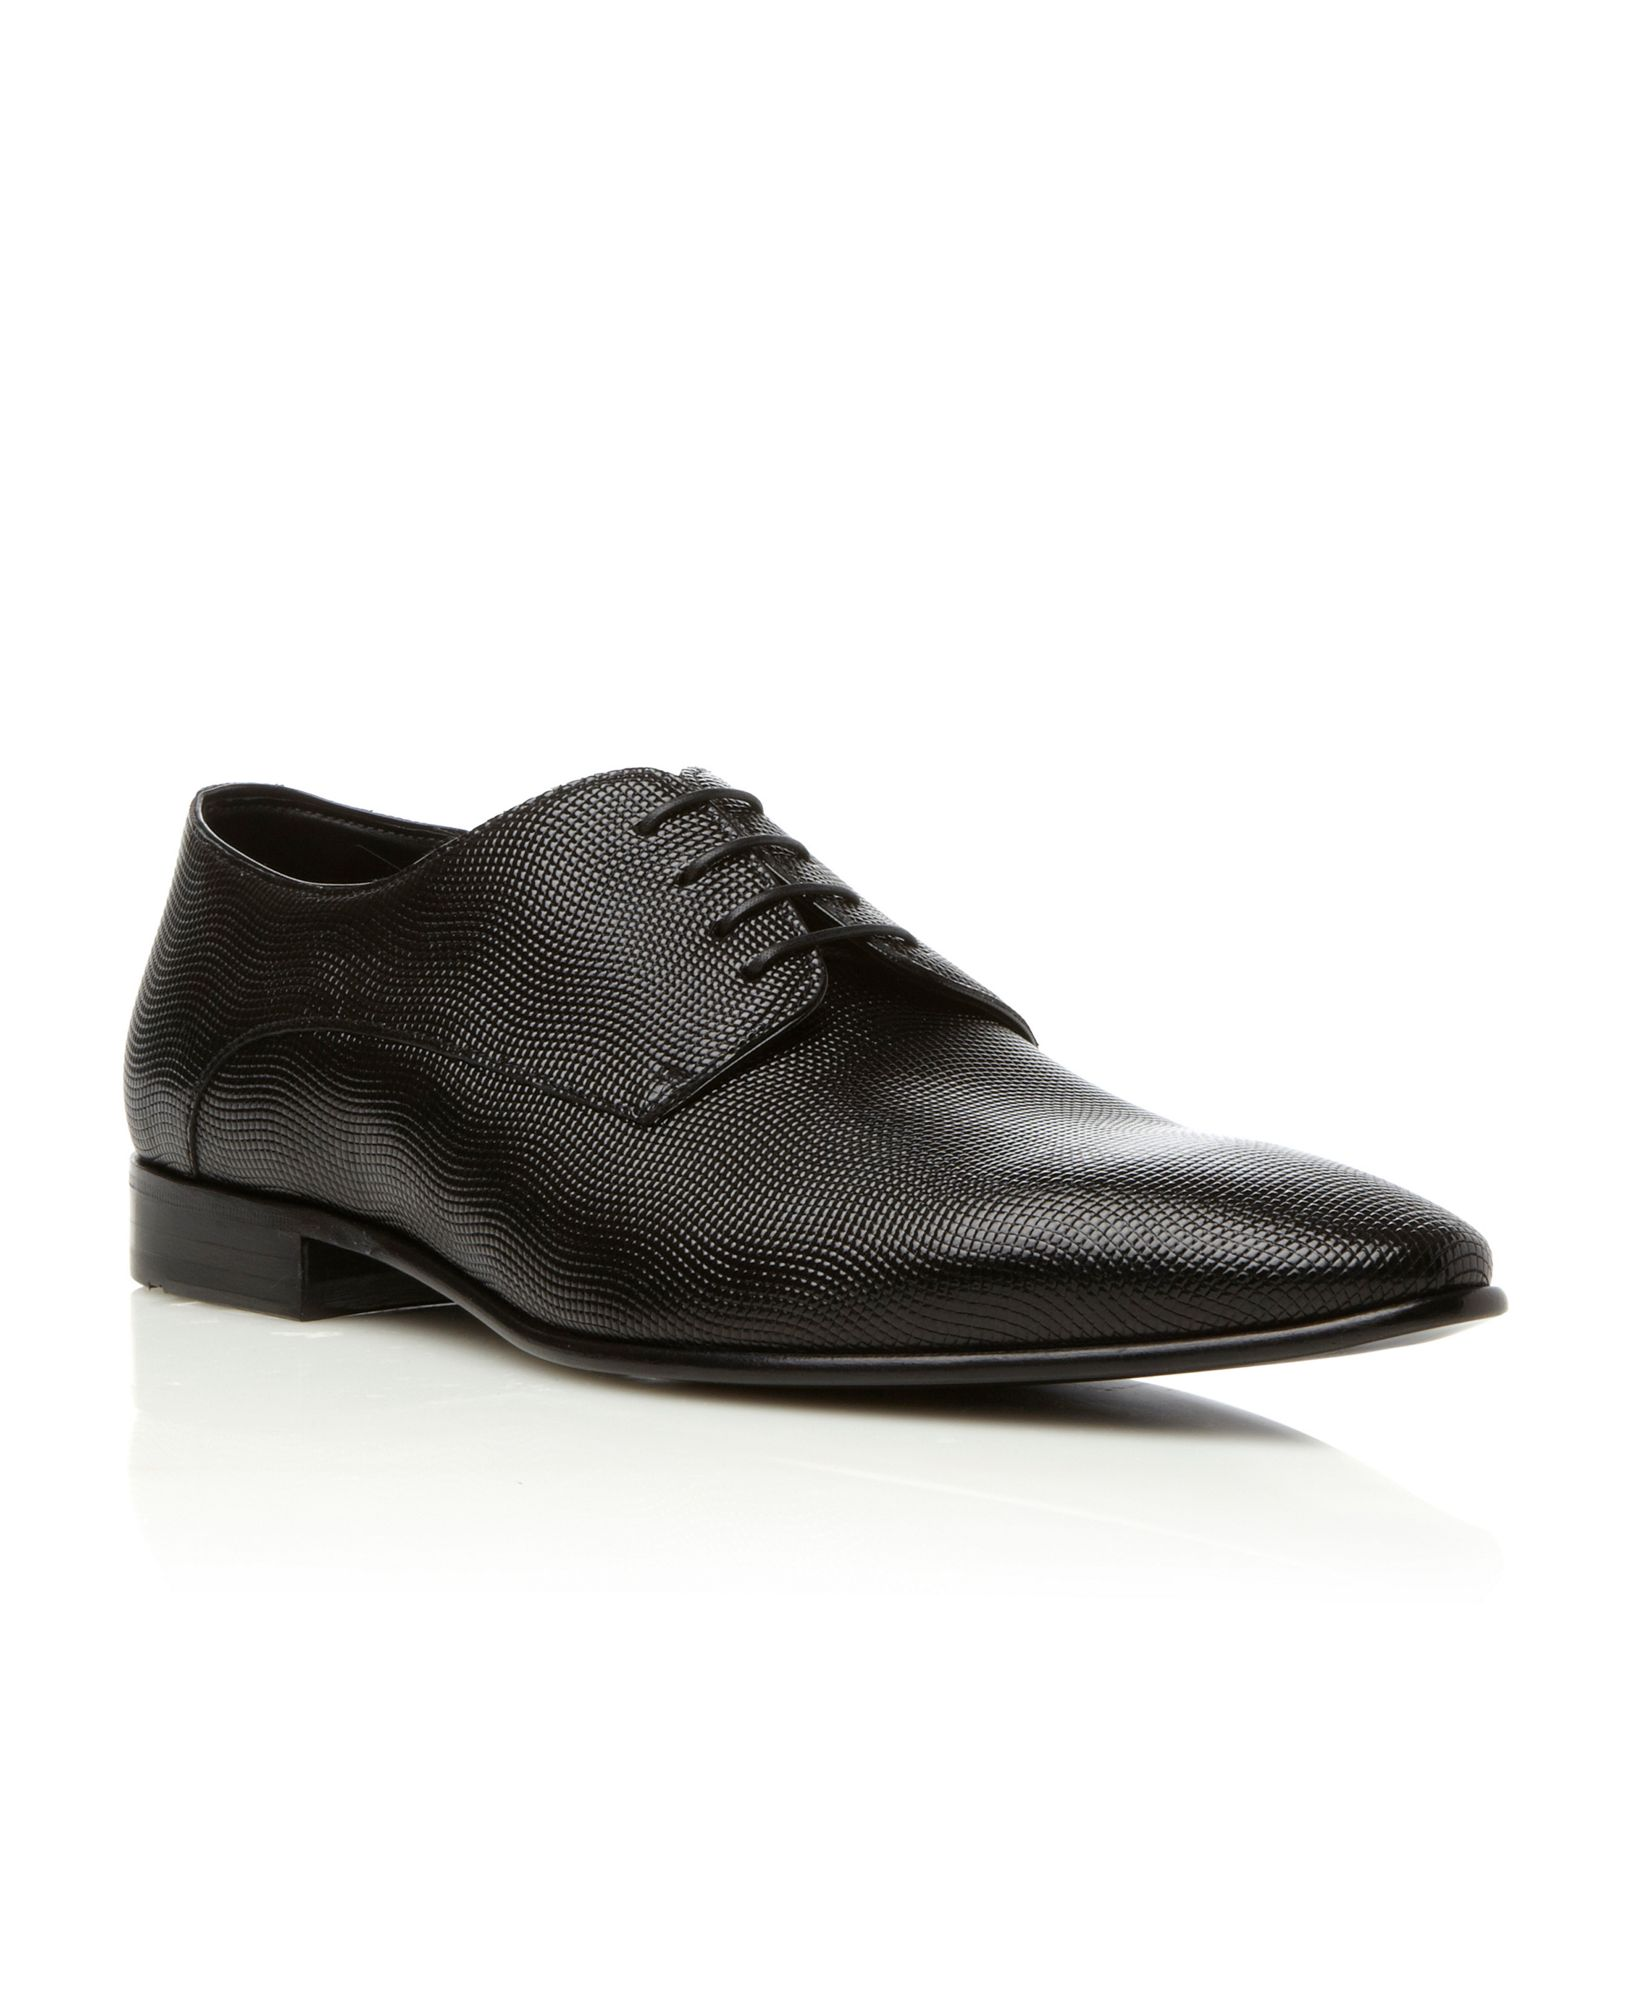 Hugo Boss Brown Derby Shoes